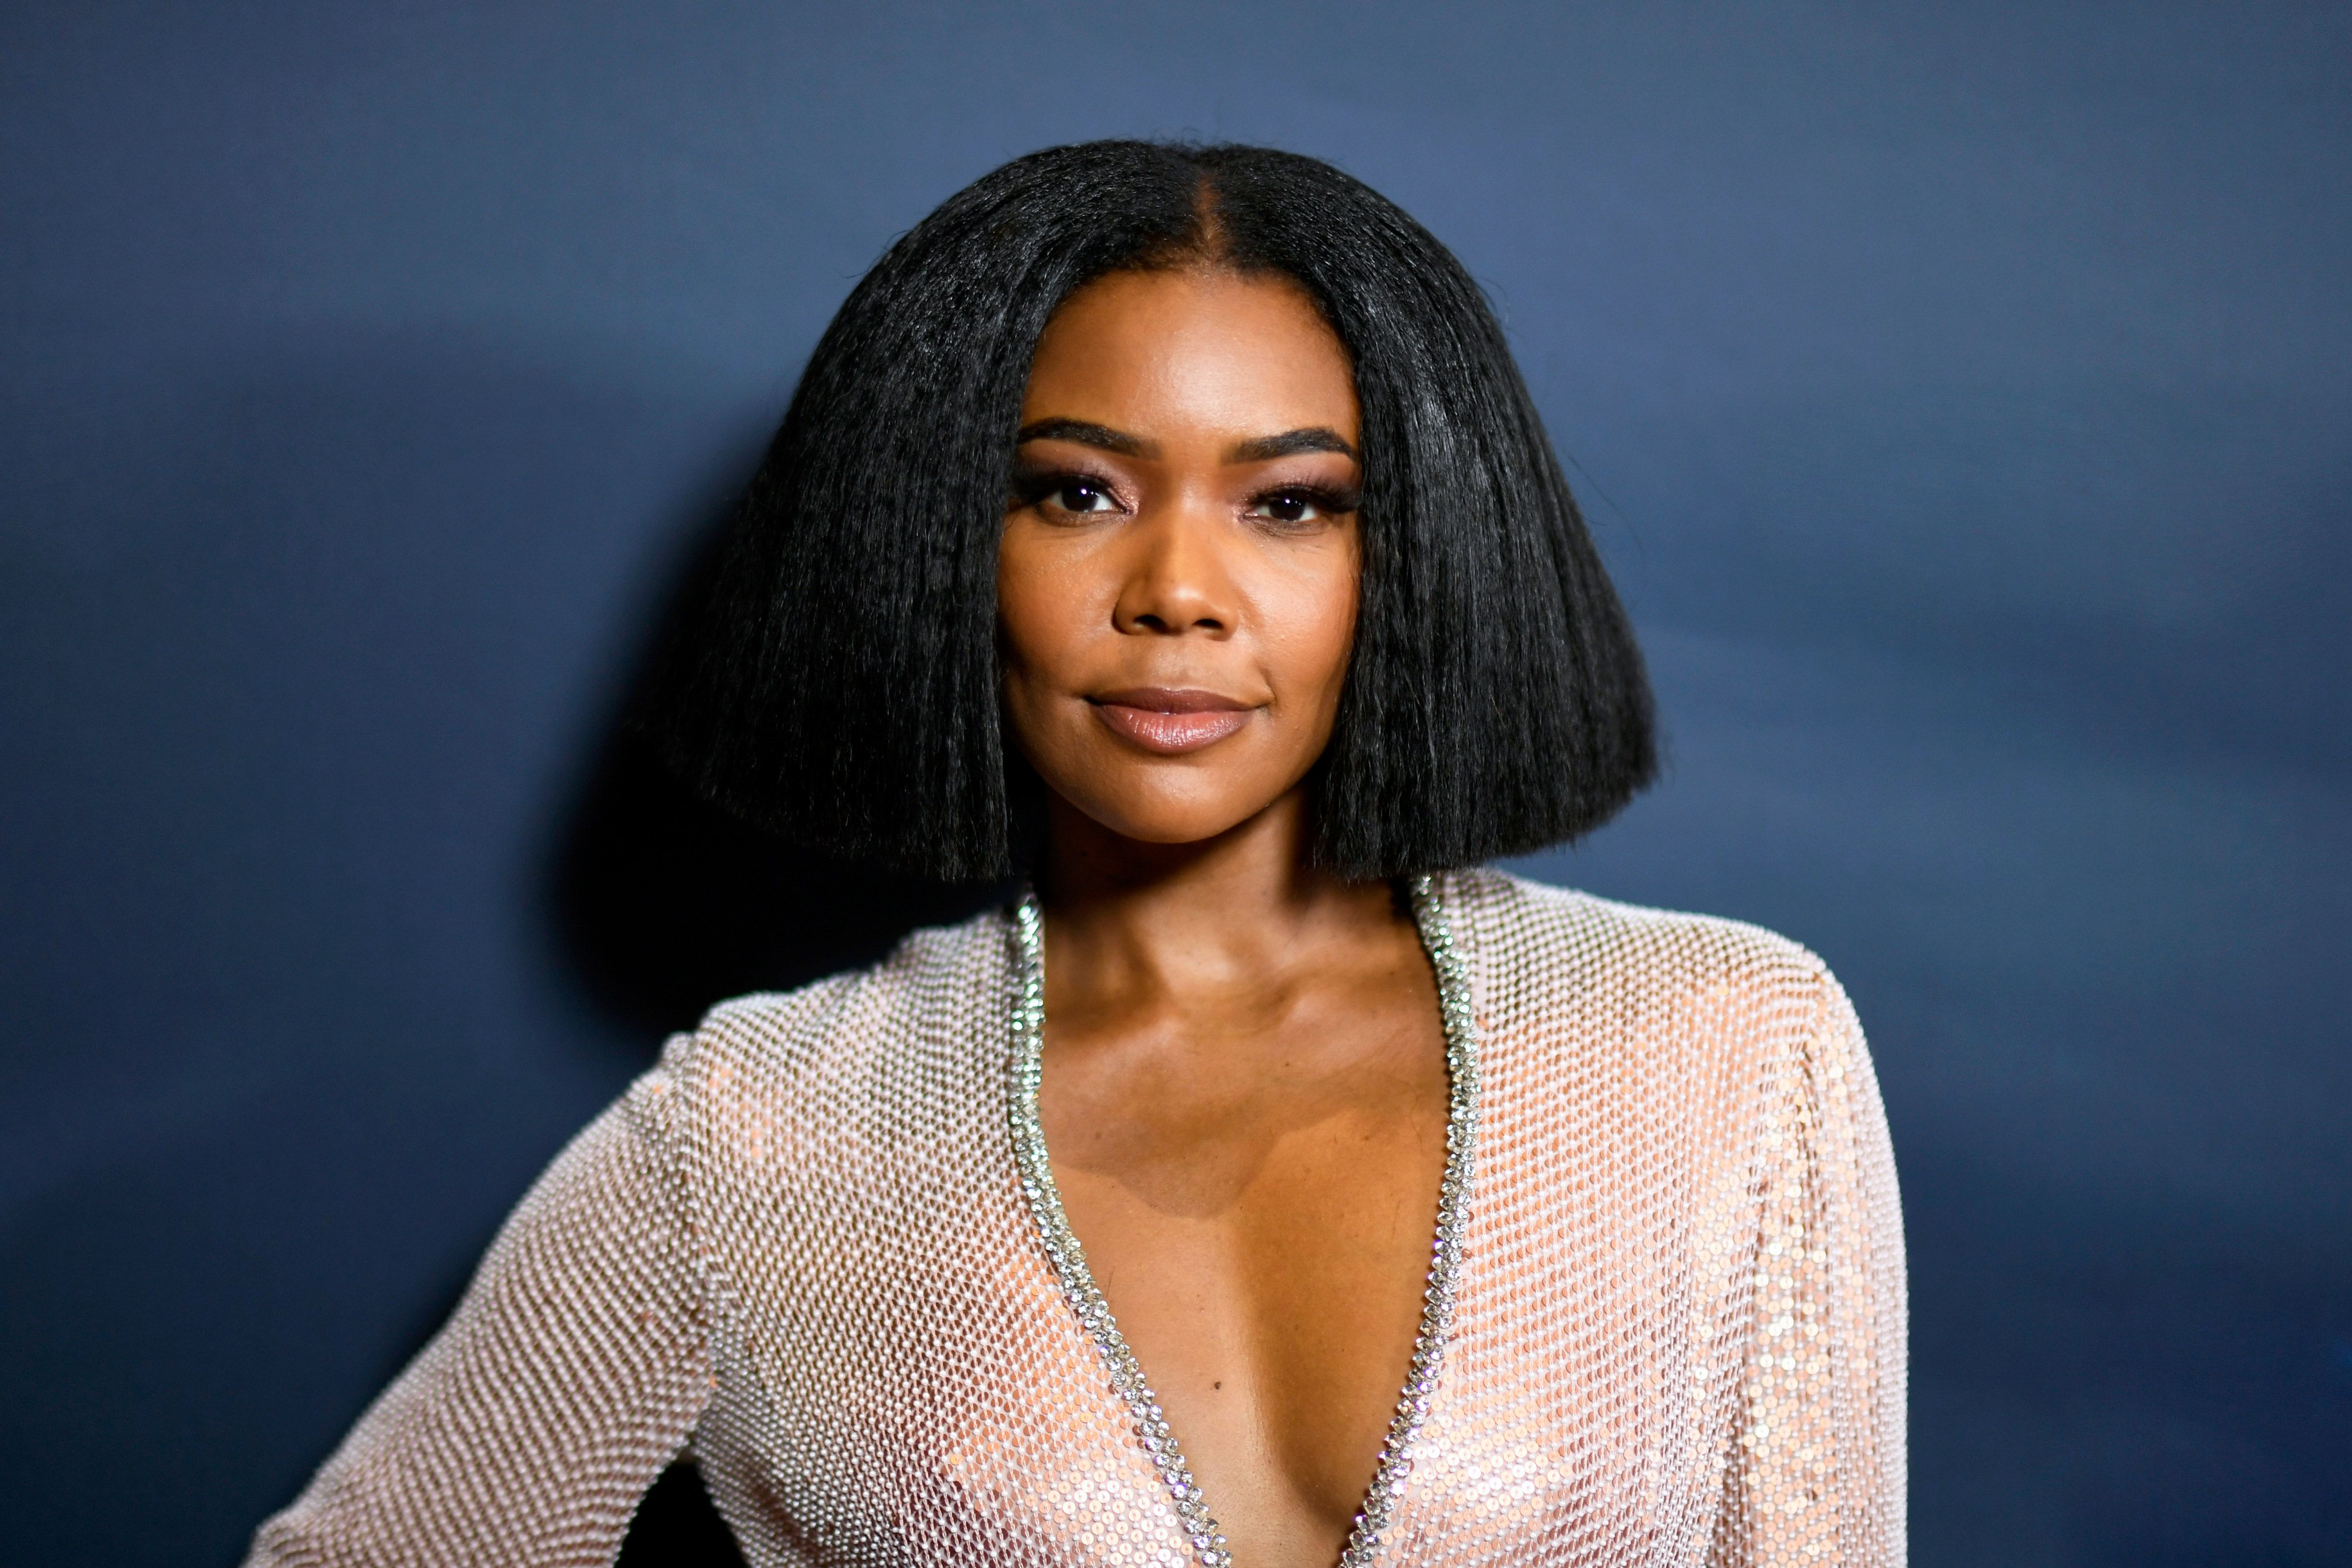 Gabrielle Union's New Natural Haircut and Glowing Skin Is All the Inspo You'll Need